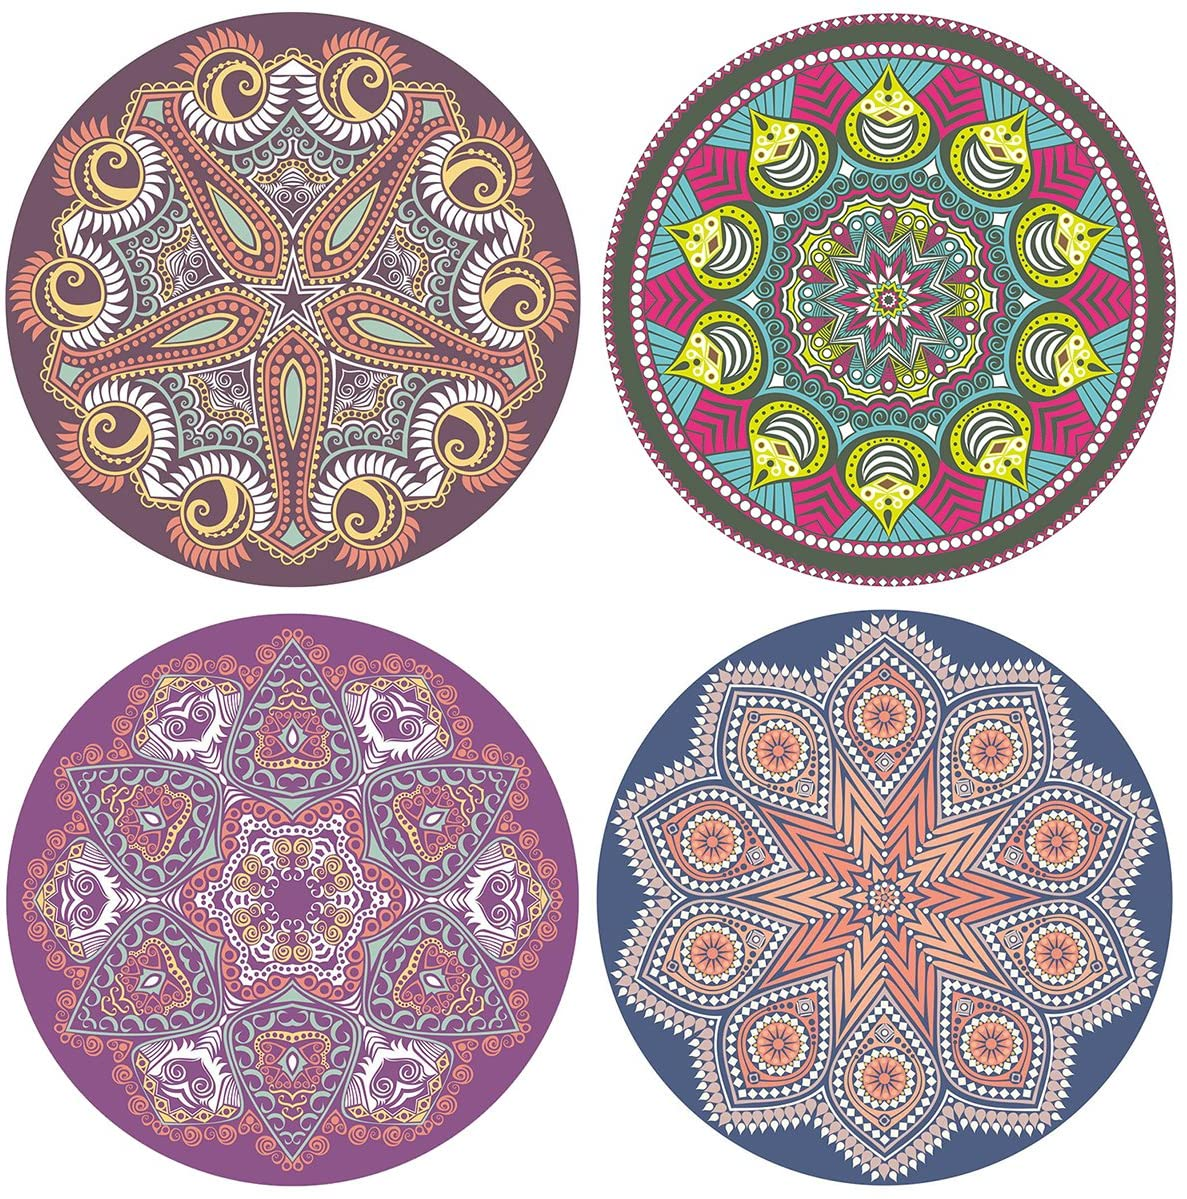 SUPCOW Non Slip Ceramic Coaster Set of 4, Absorbent Stone Coasters for Drinks Coffee Mug Glass Cup Place Mats Mandala